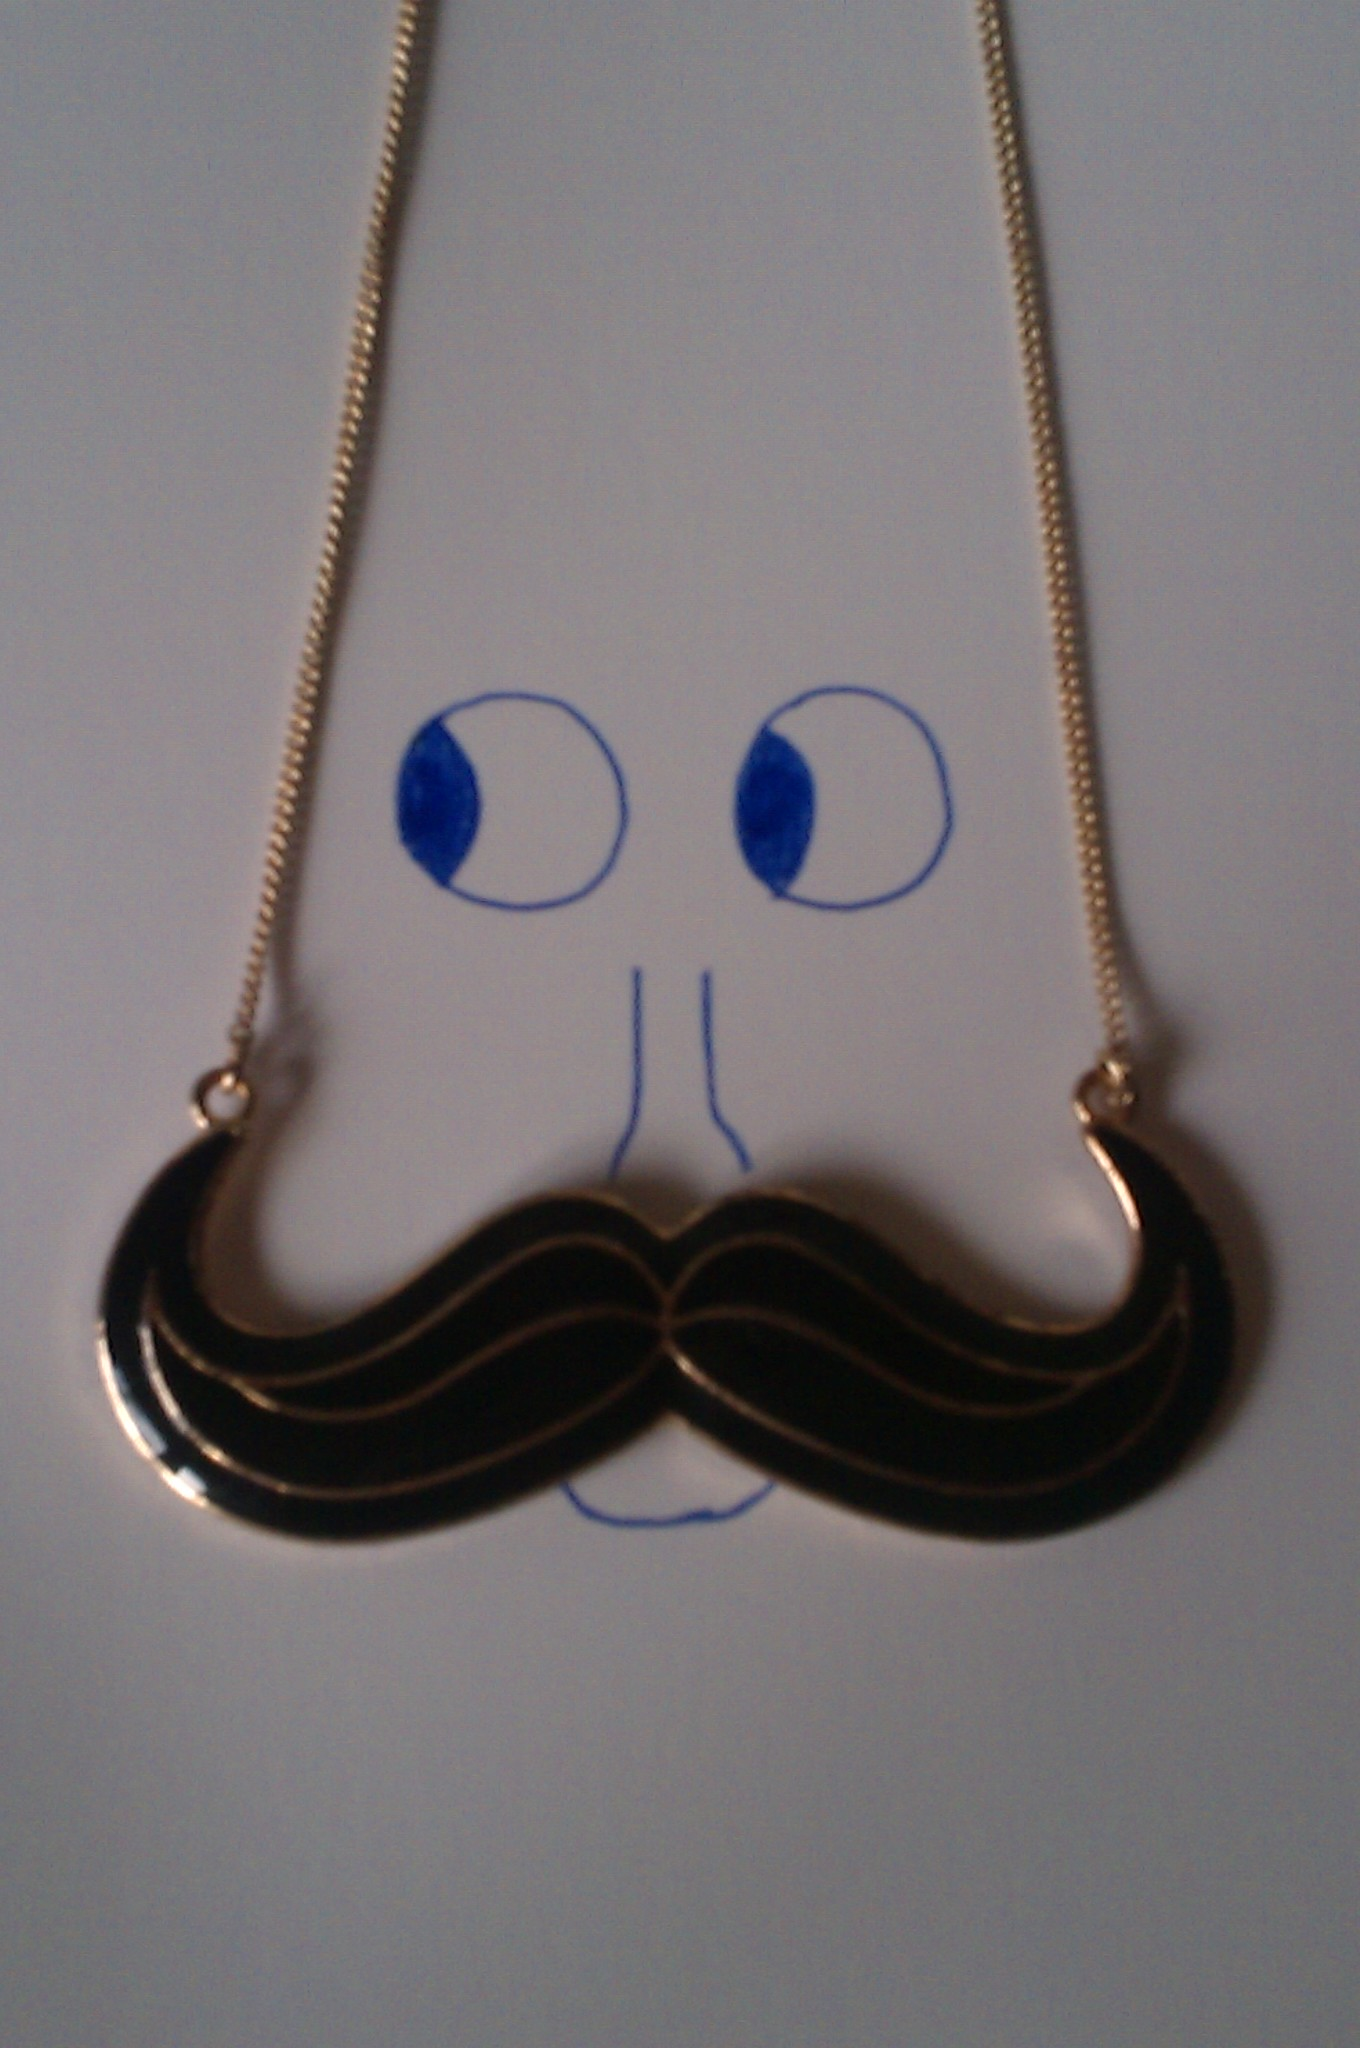 photos of mustache